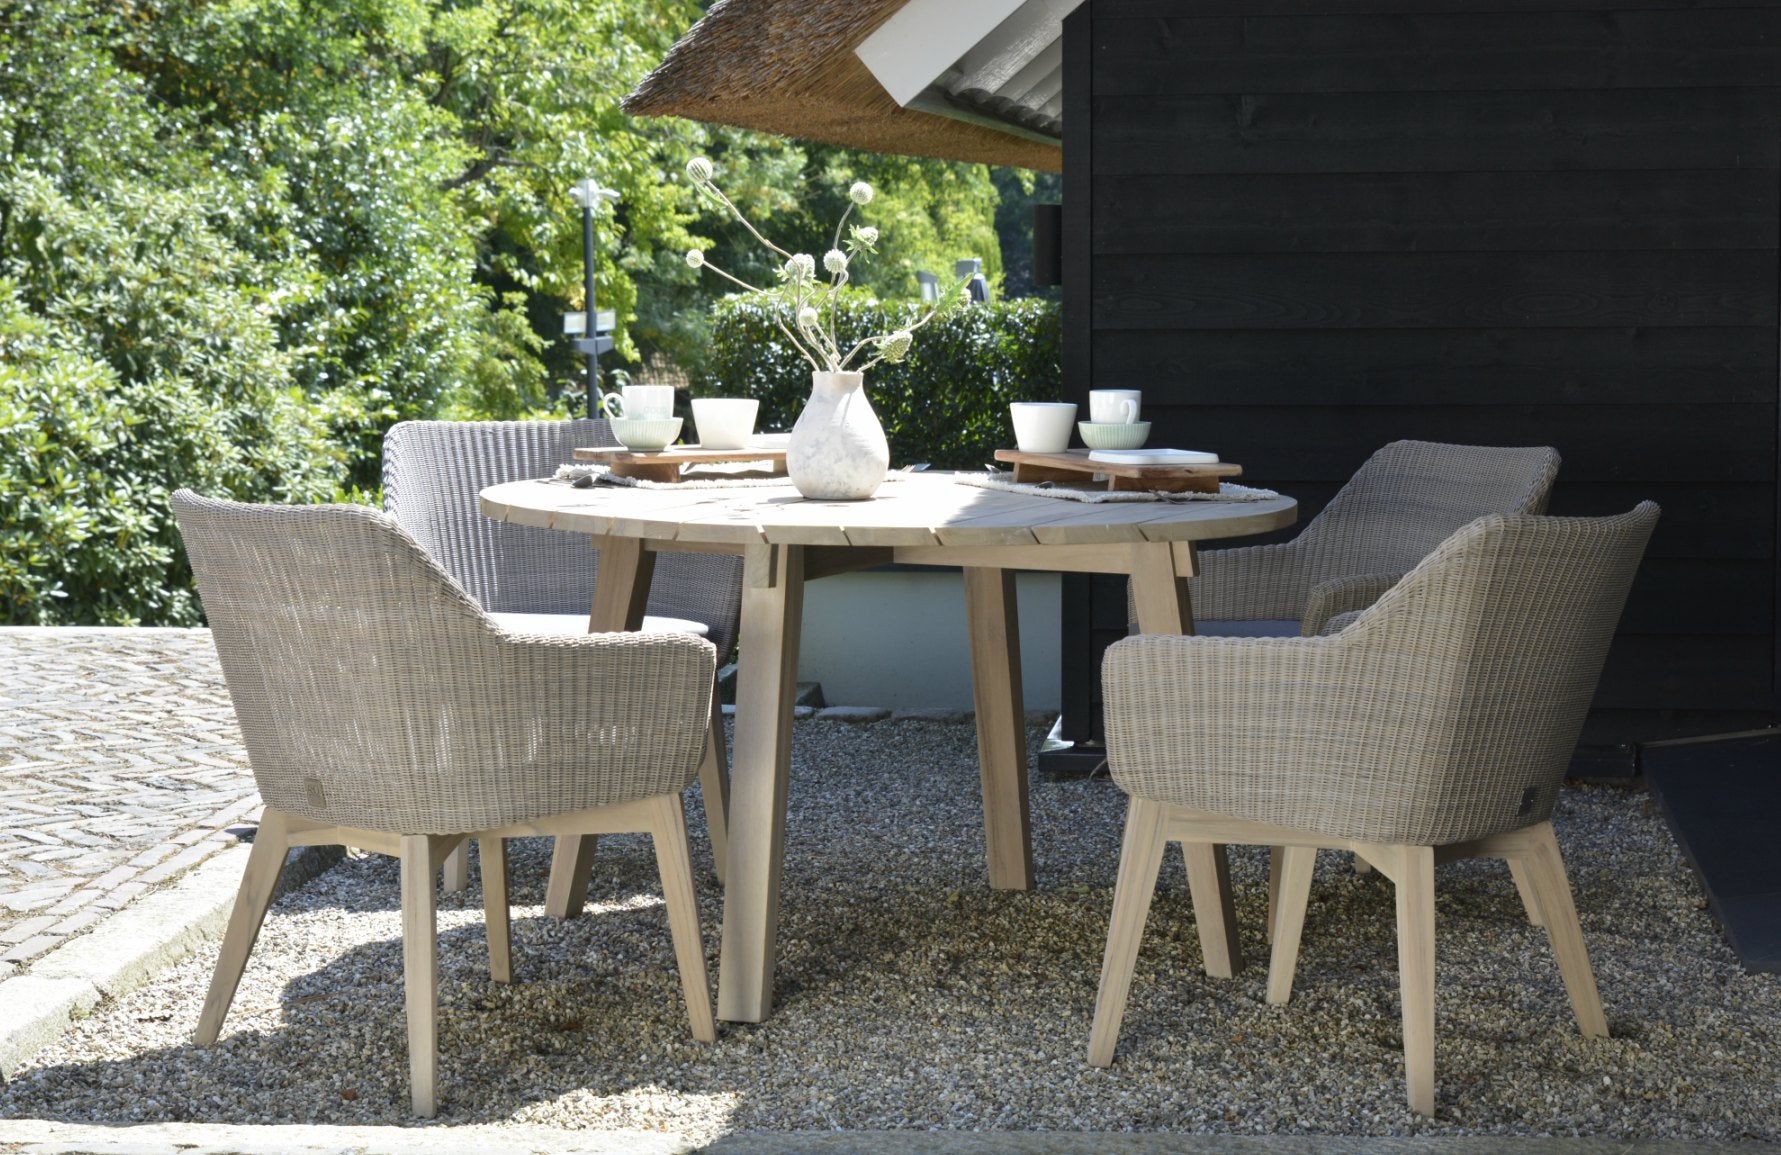 Luxury Outdoor Dining | Casual Dining Furniture | Shop outdoor dining furniture online at LuxDeco.com